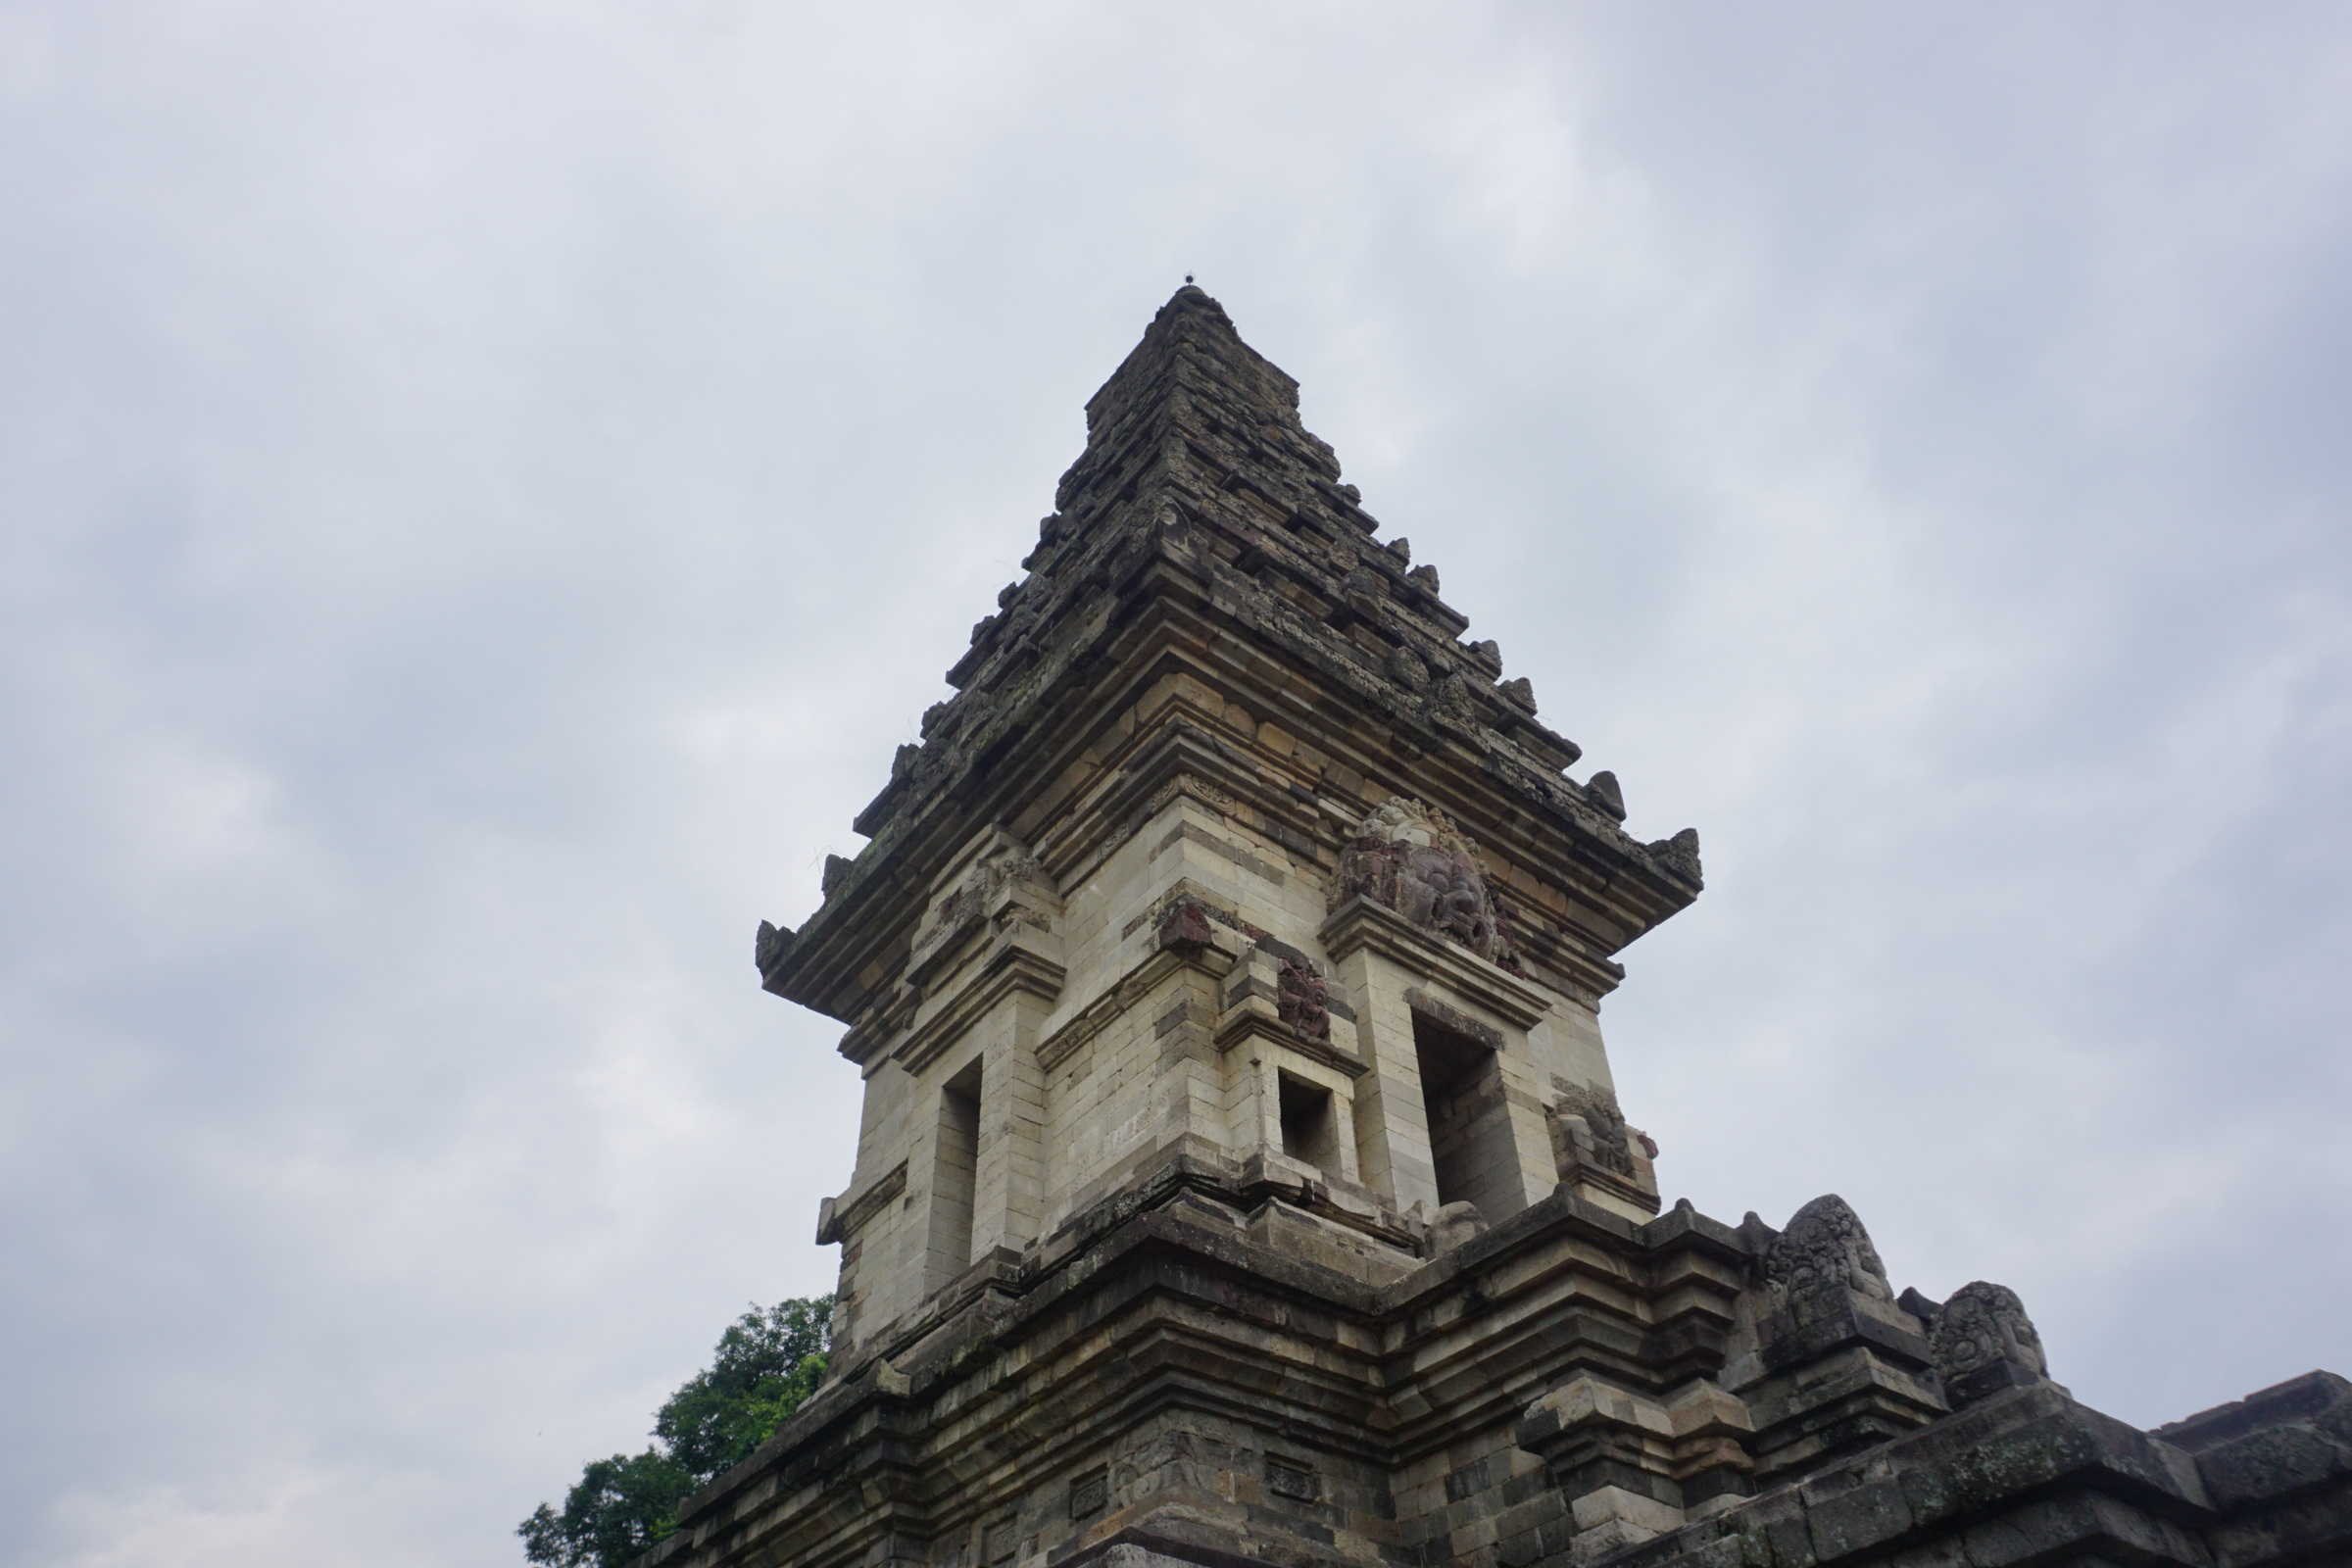 Candi Jawi with Reconstructed Middle Section